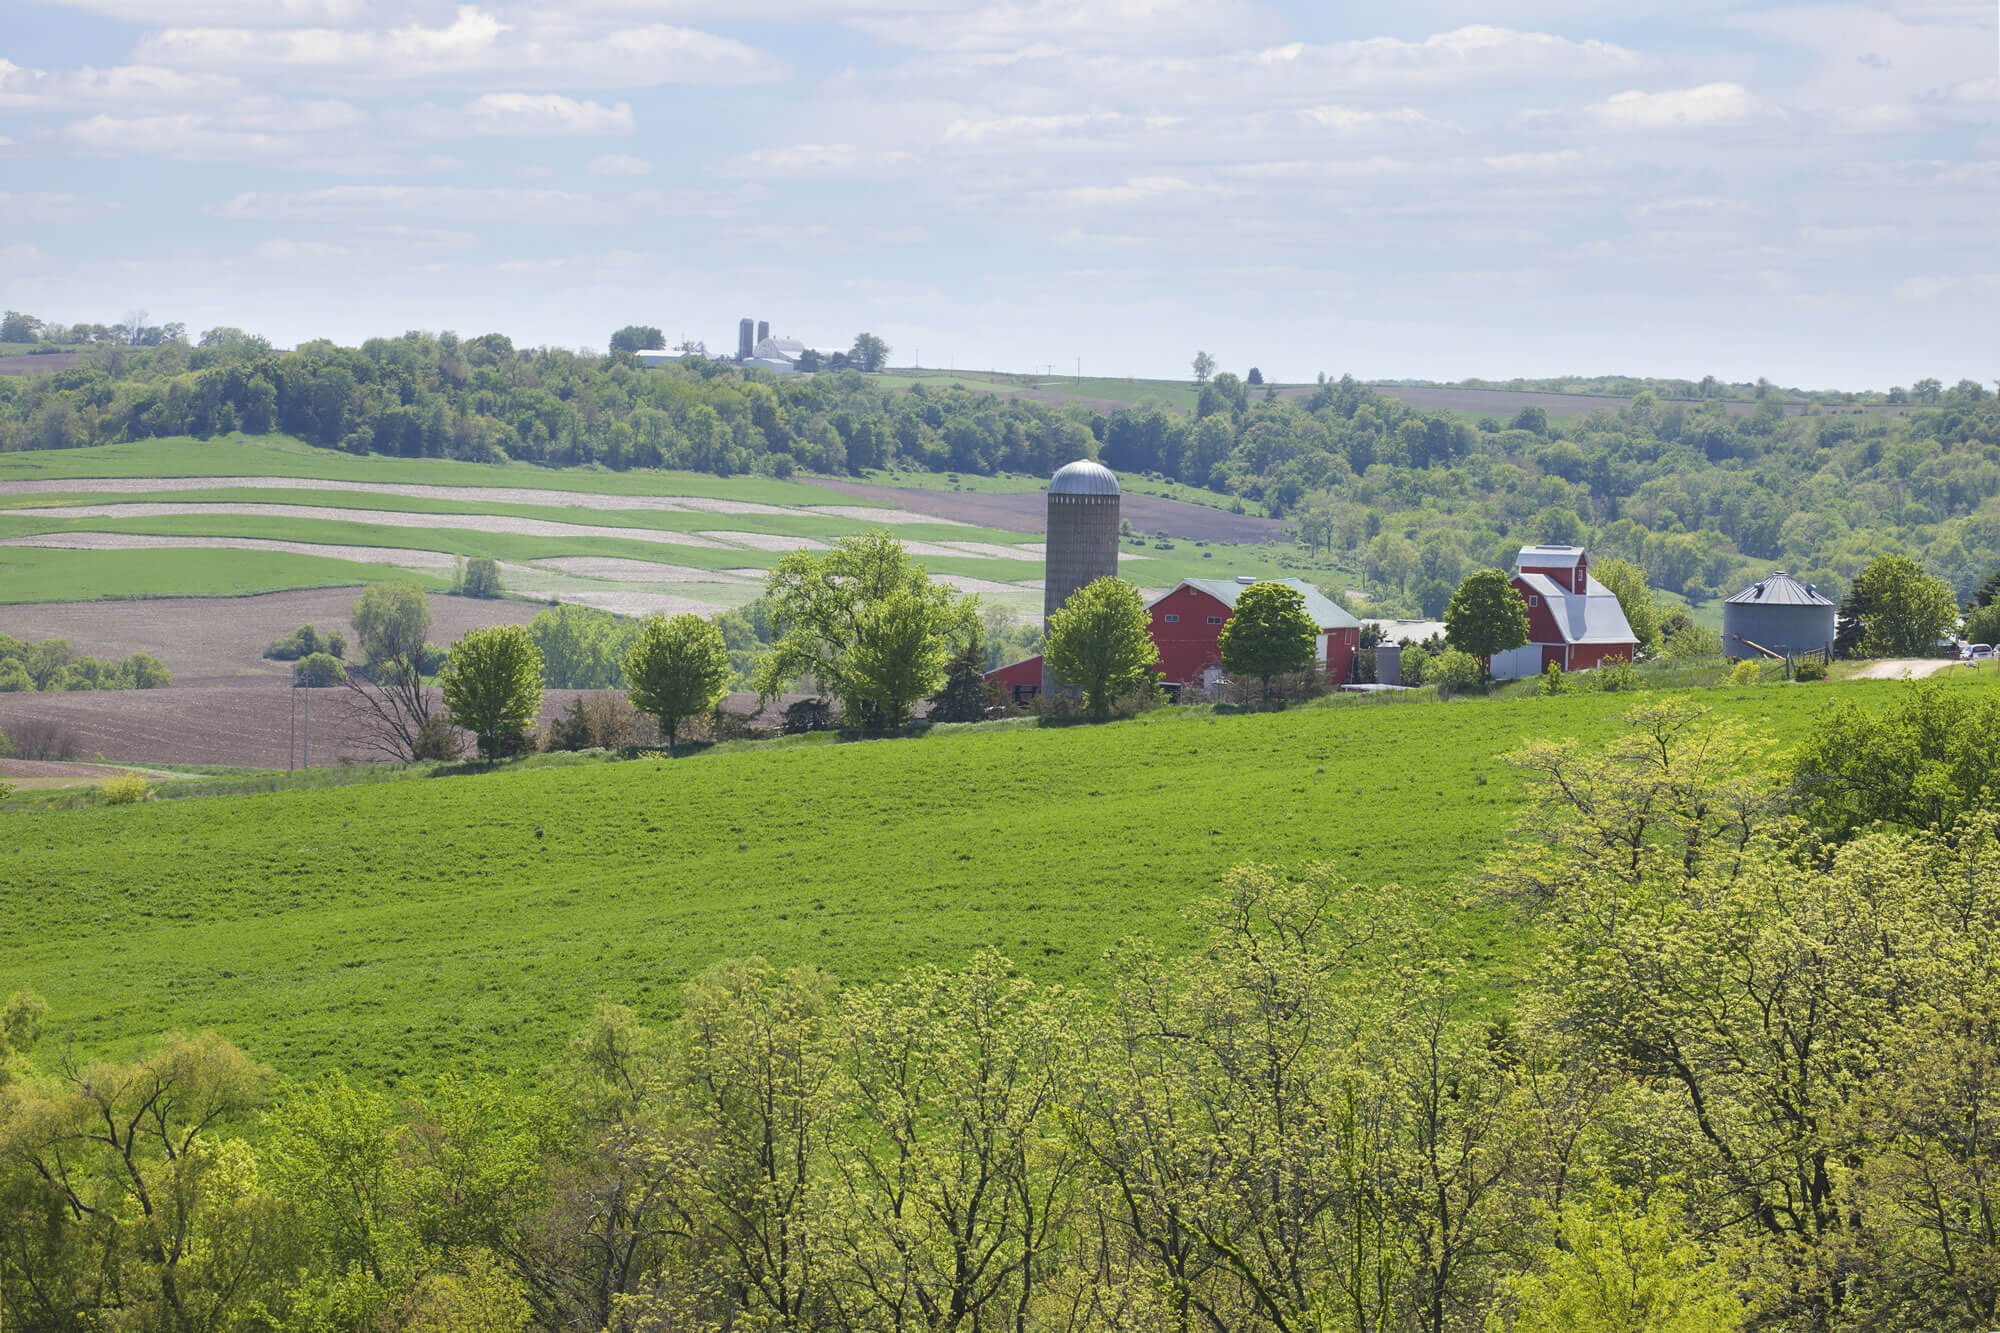 Iowa countryside during spring